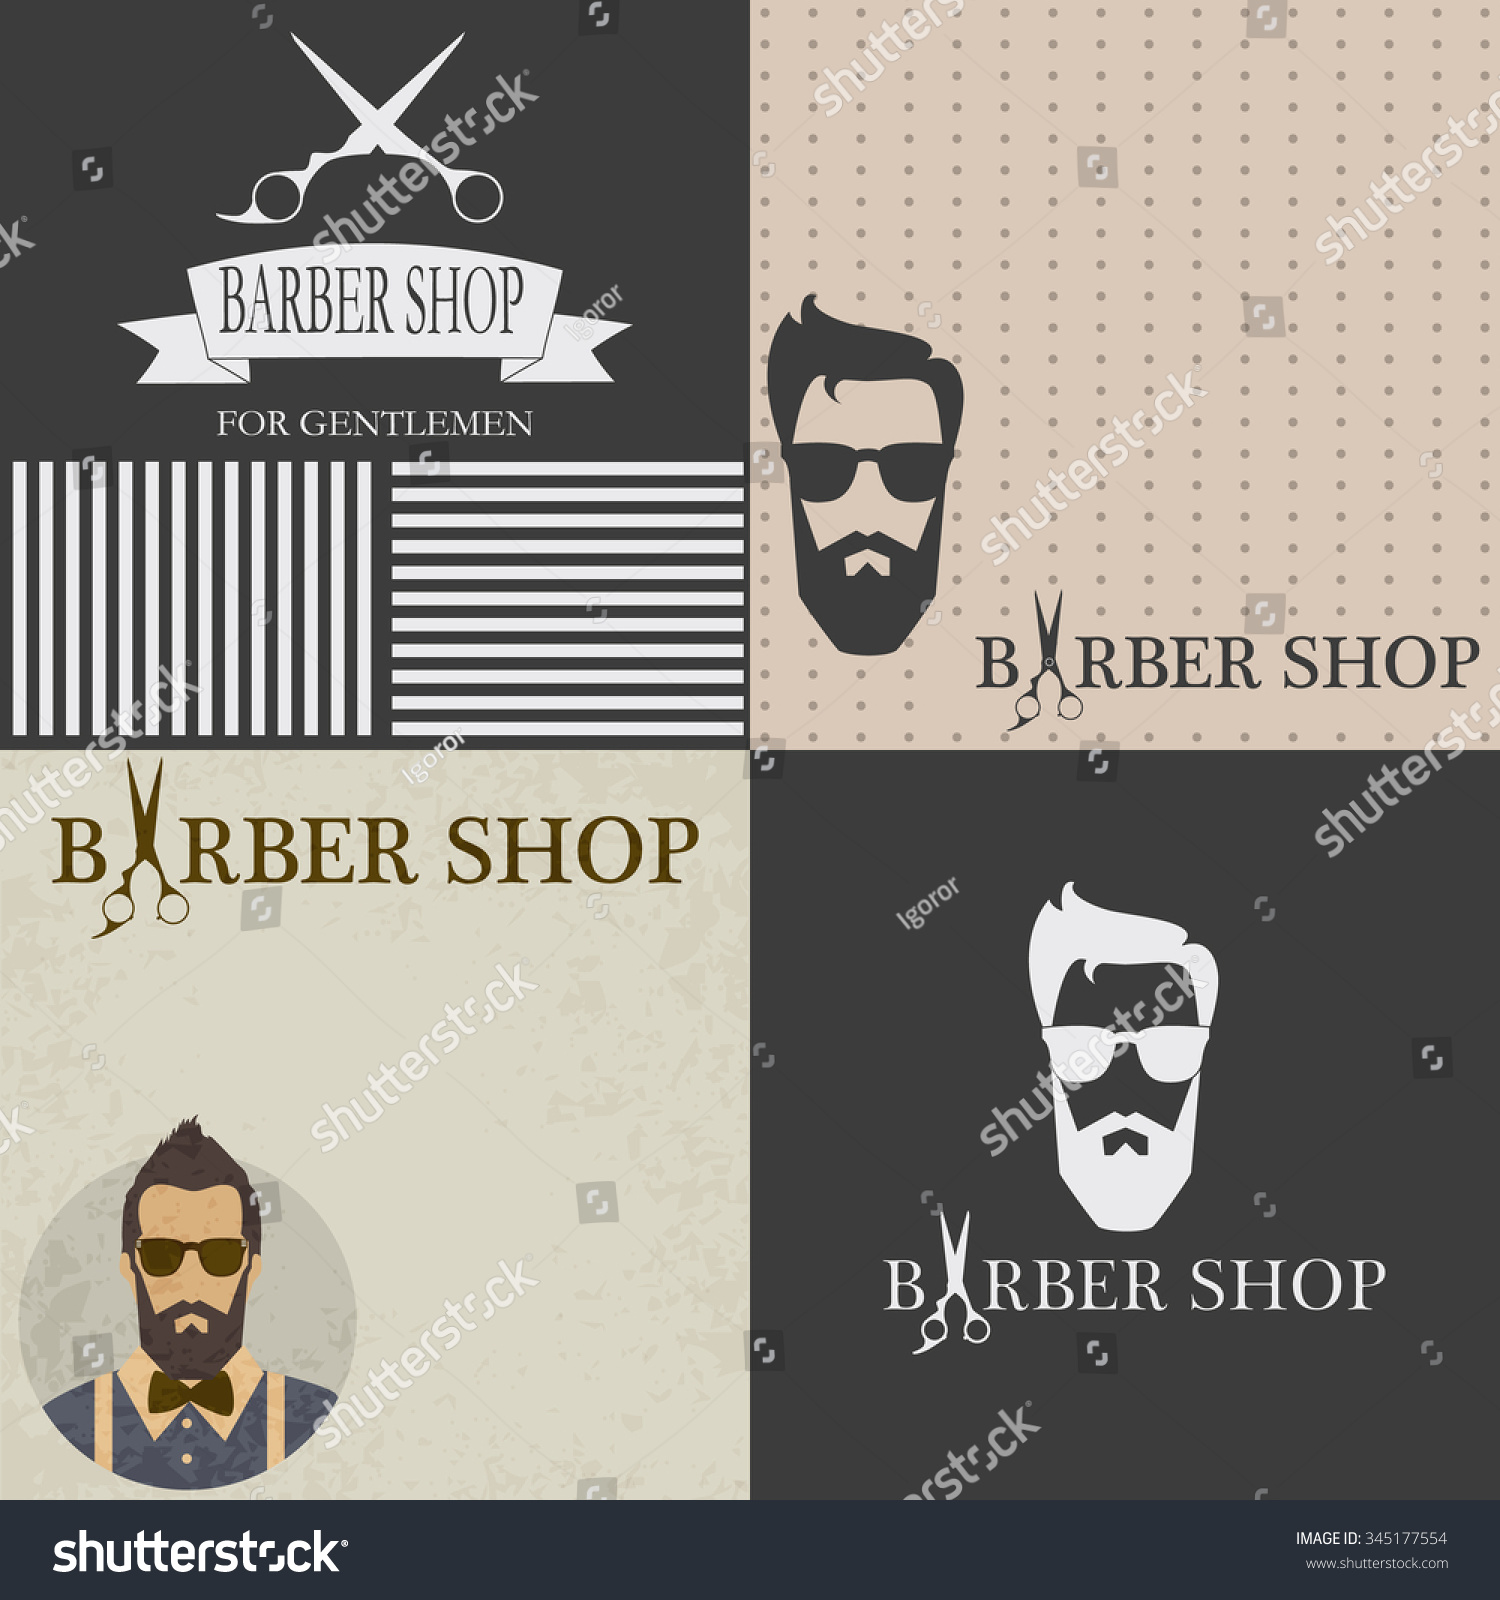 Business card labels image collections free business cards set hairdressing stylish gentlemen card business stock vector set of hairdressing stylish gentlemen card business cards magicingreecefo Images